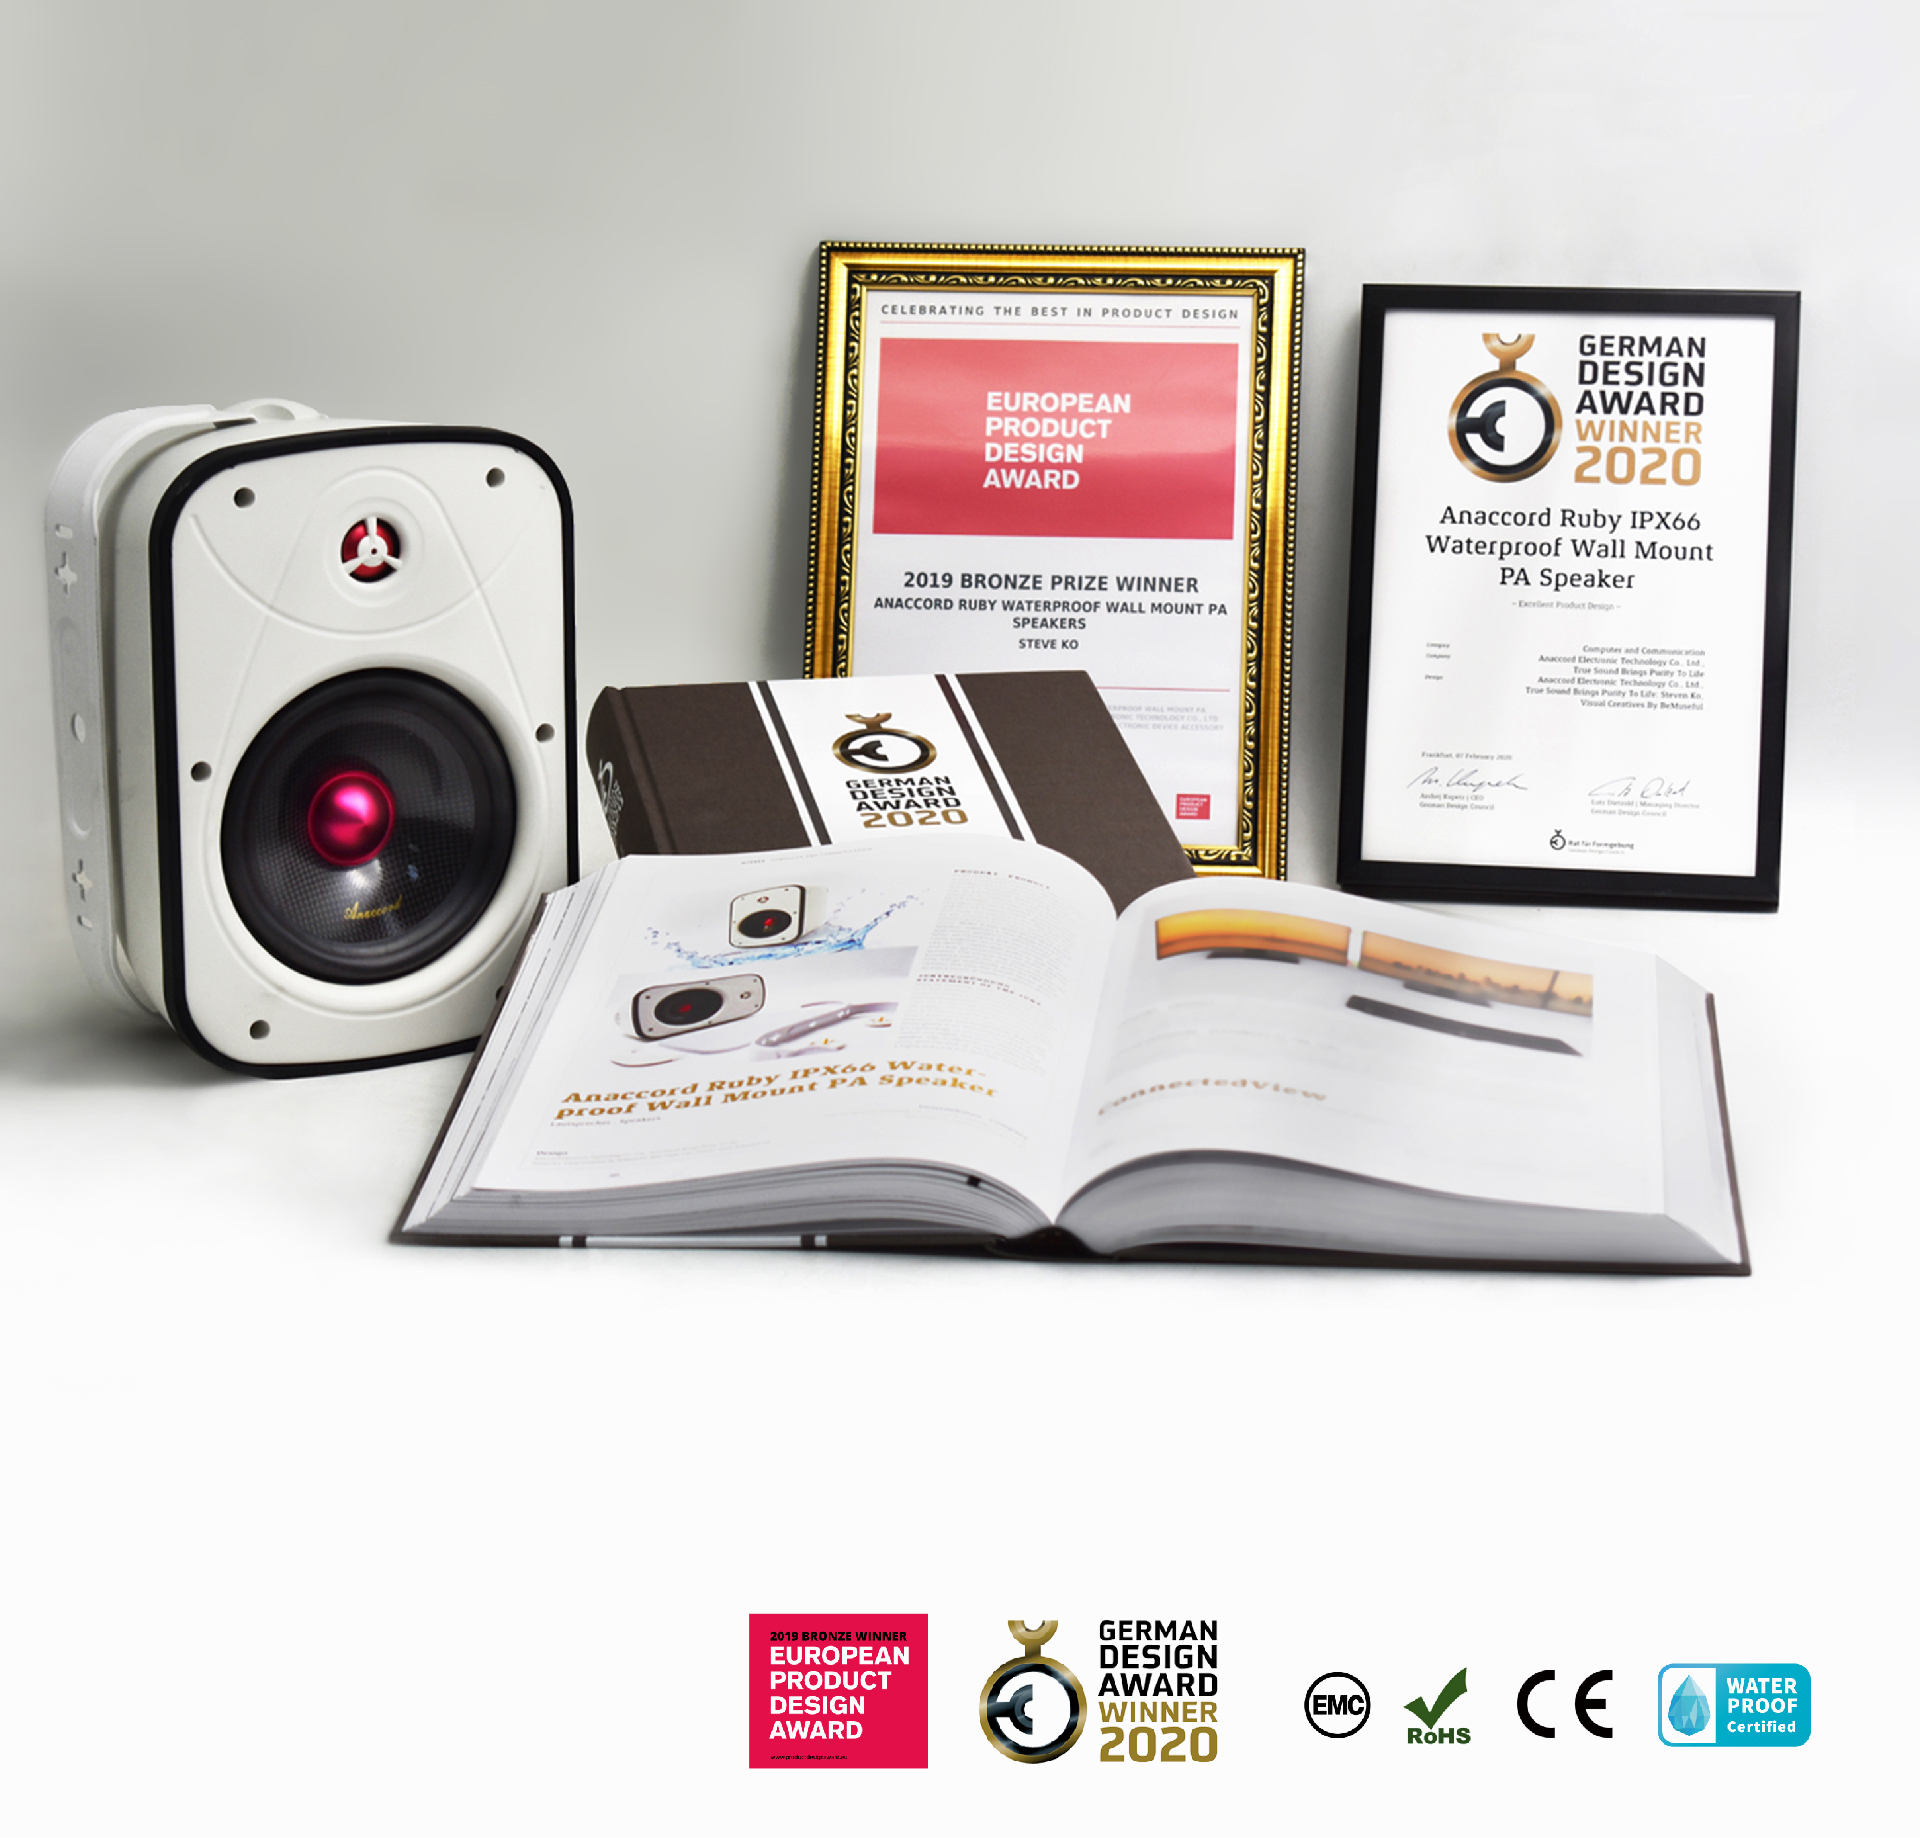 EPDA-European-Product-Design-Awards-and-GDA-german-design-award-2020-Anaccord-home-tab-01